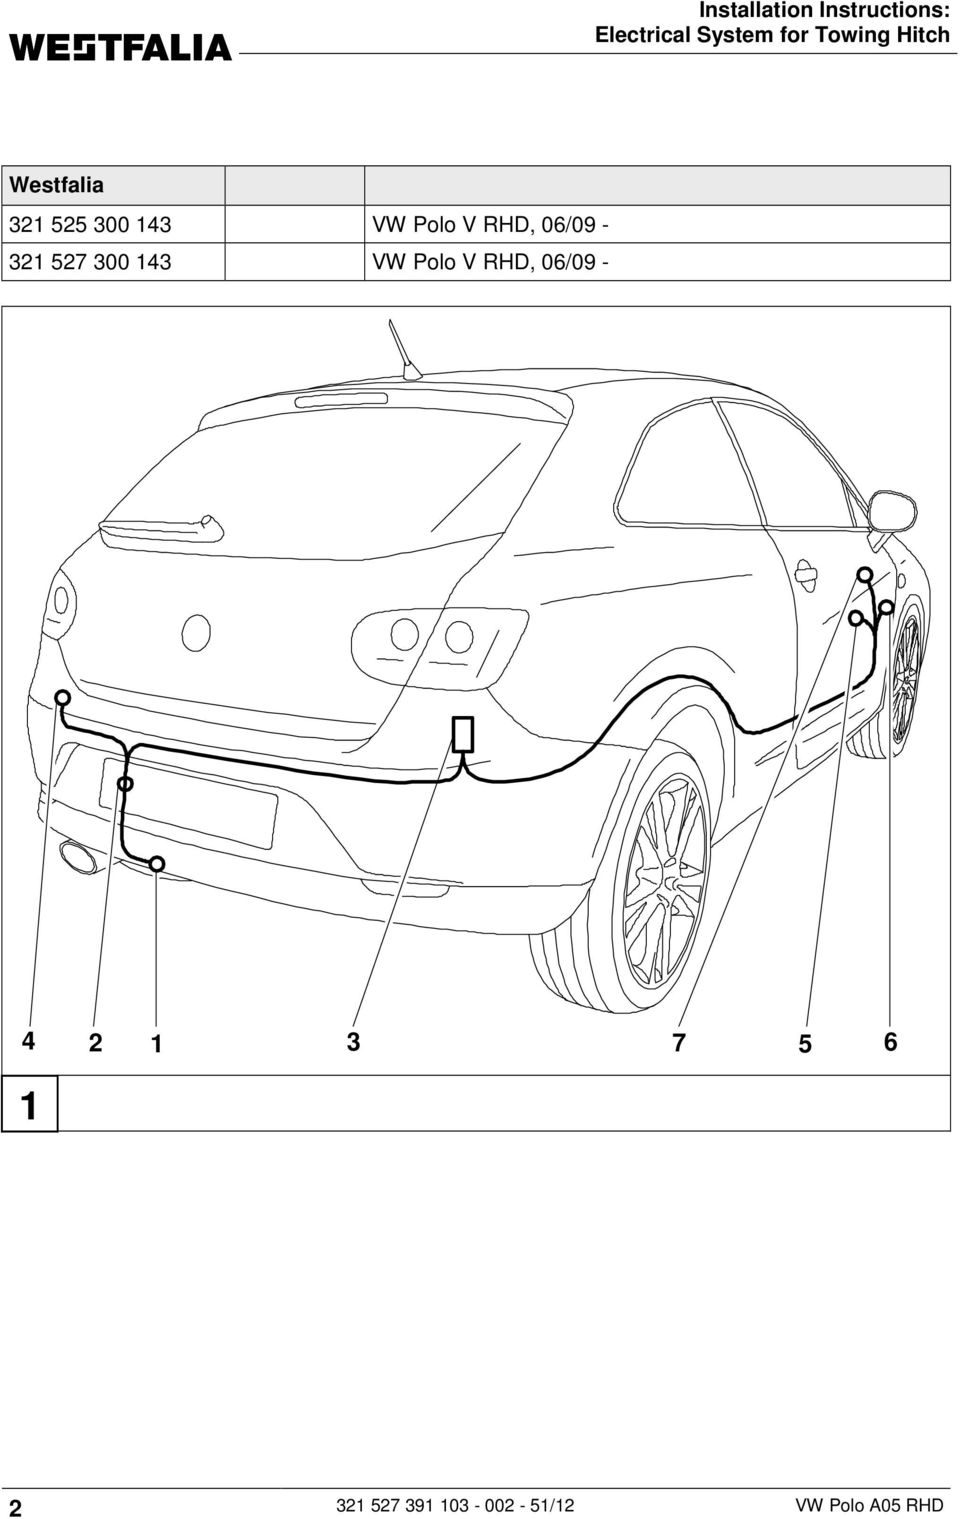 Swell Installation Instructions Electrical System For Towing Hitch Pdf Wiring Cloud Pimpapsuggs Outletorg